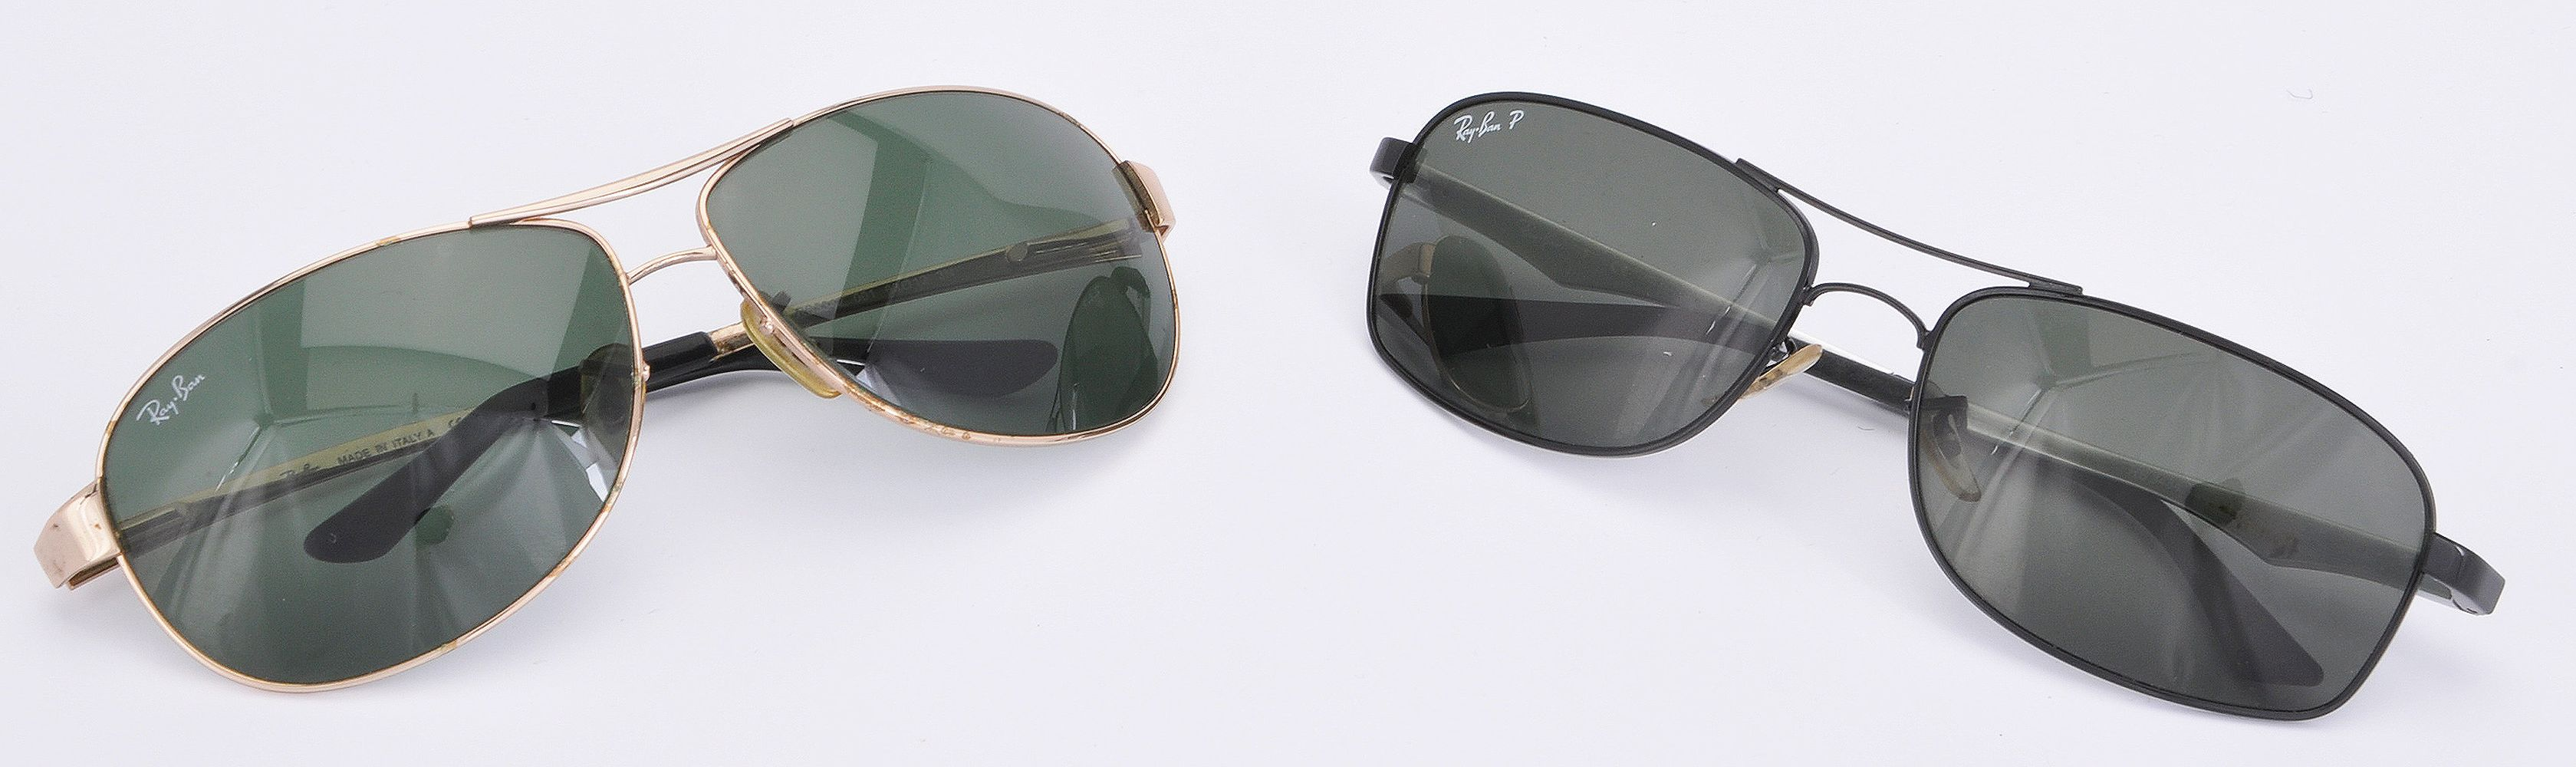 Lot 1081 - Ray Ban, ref. RB3342 001, a pair of gilt metal framed sunglasses